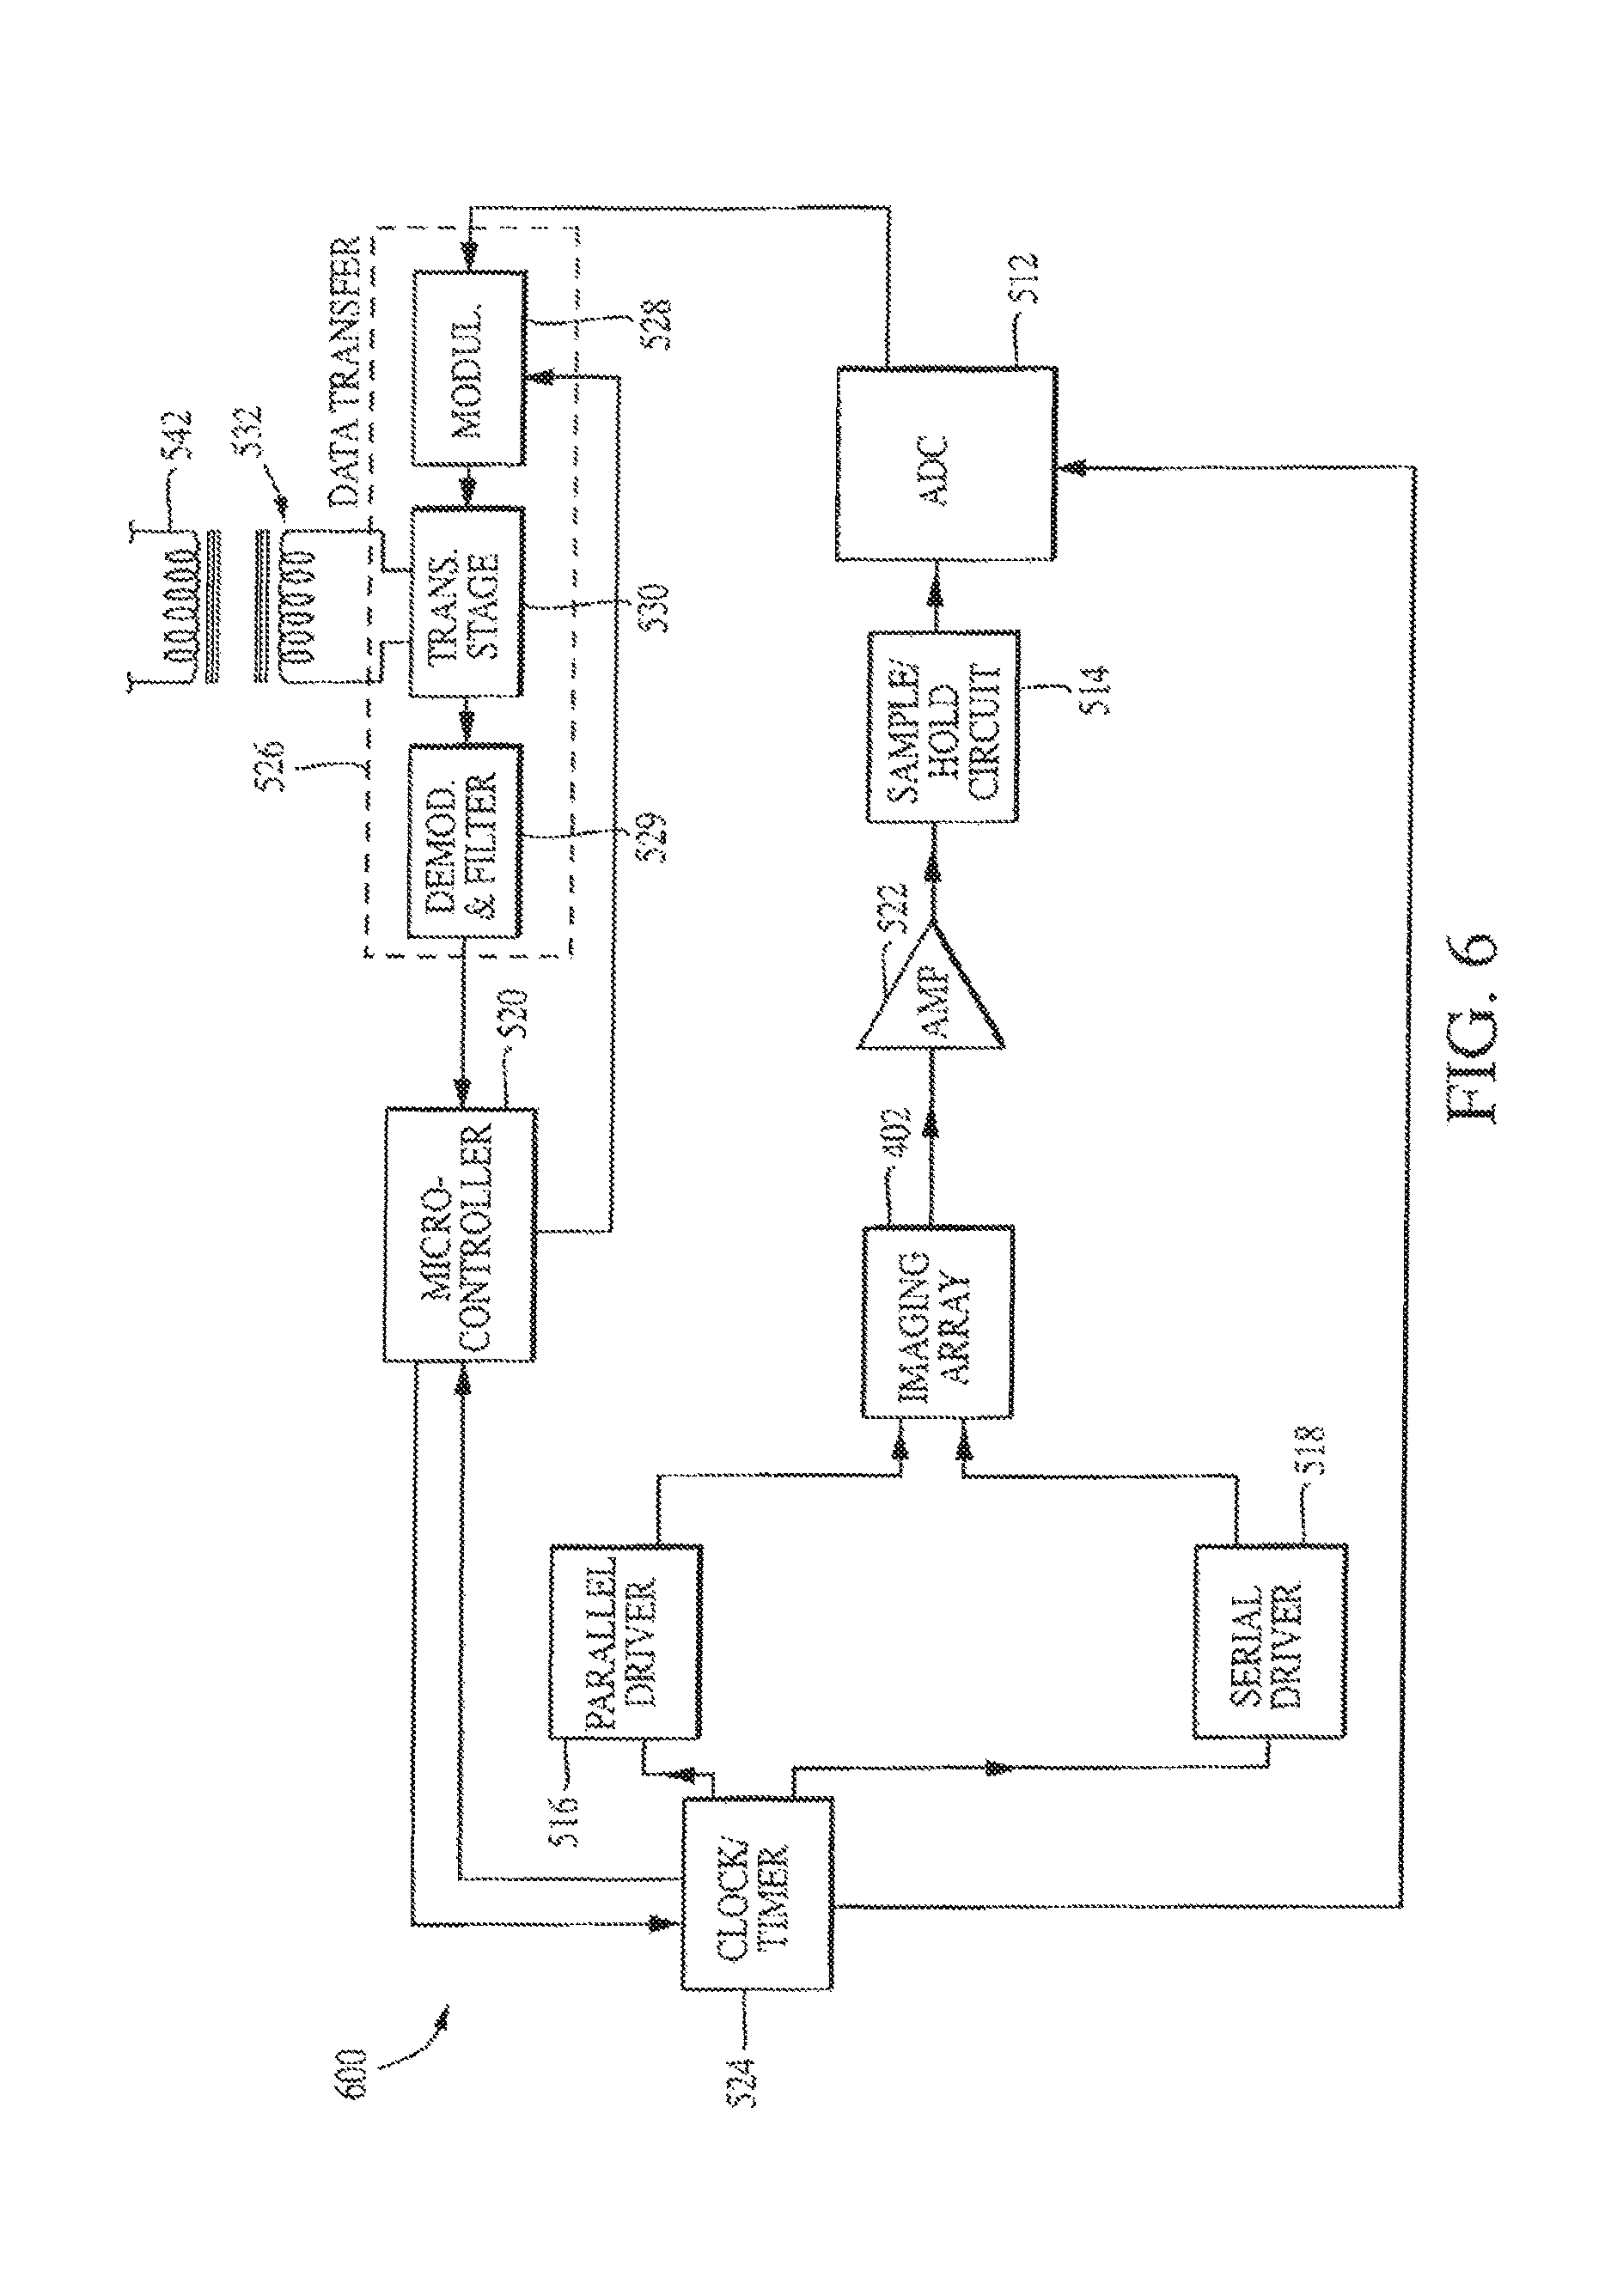 Patent Us 9913575 B2 This Shows Top In Vivo Flexible Large Scale Integrated Circuits Lsi